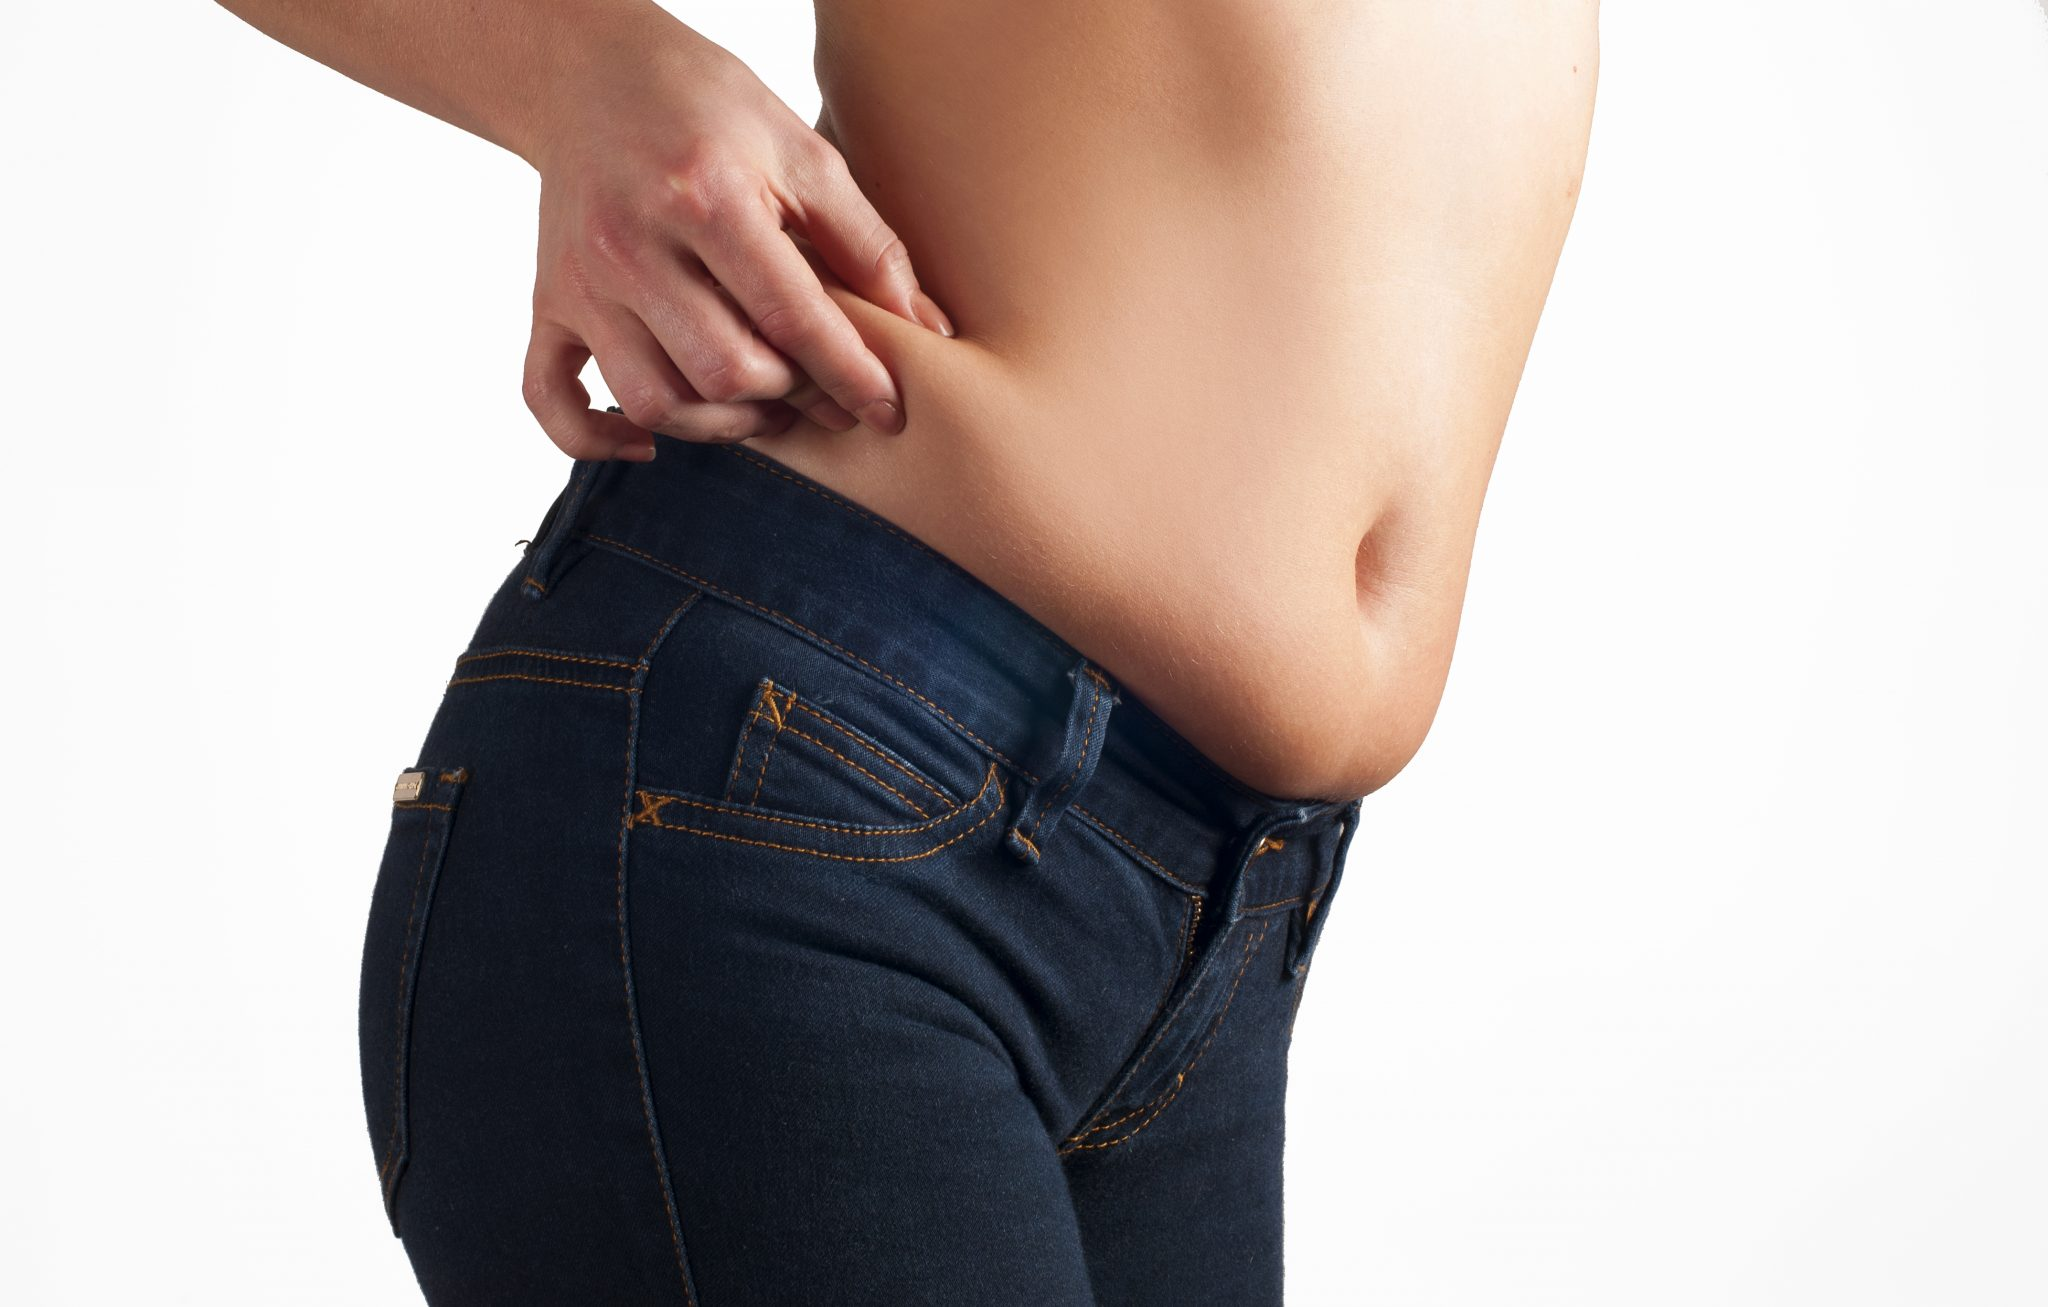 Abdominoplasty and weight-loss surgery: What are the differences?